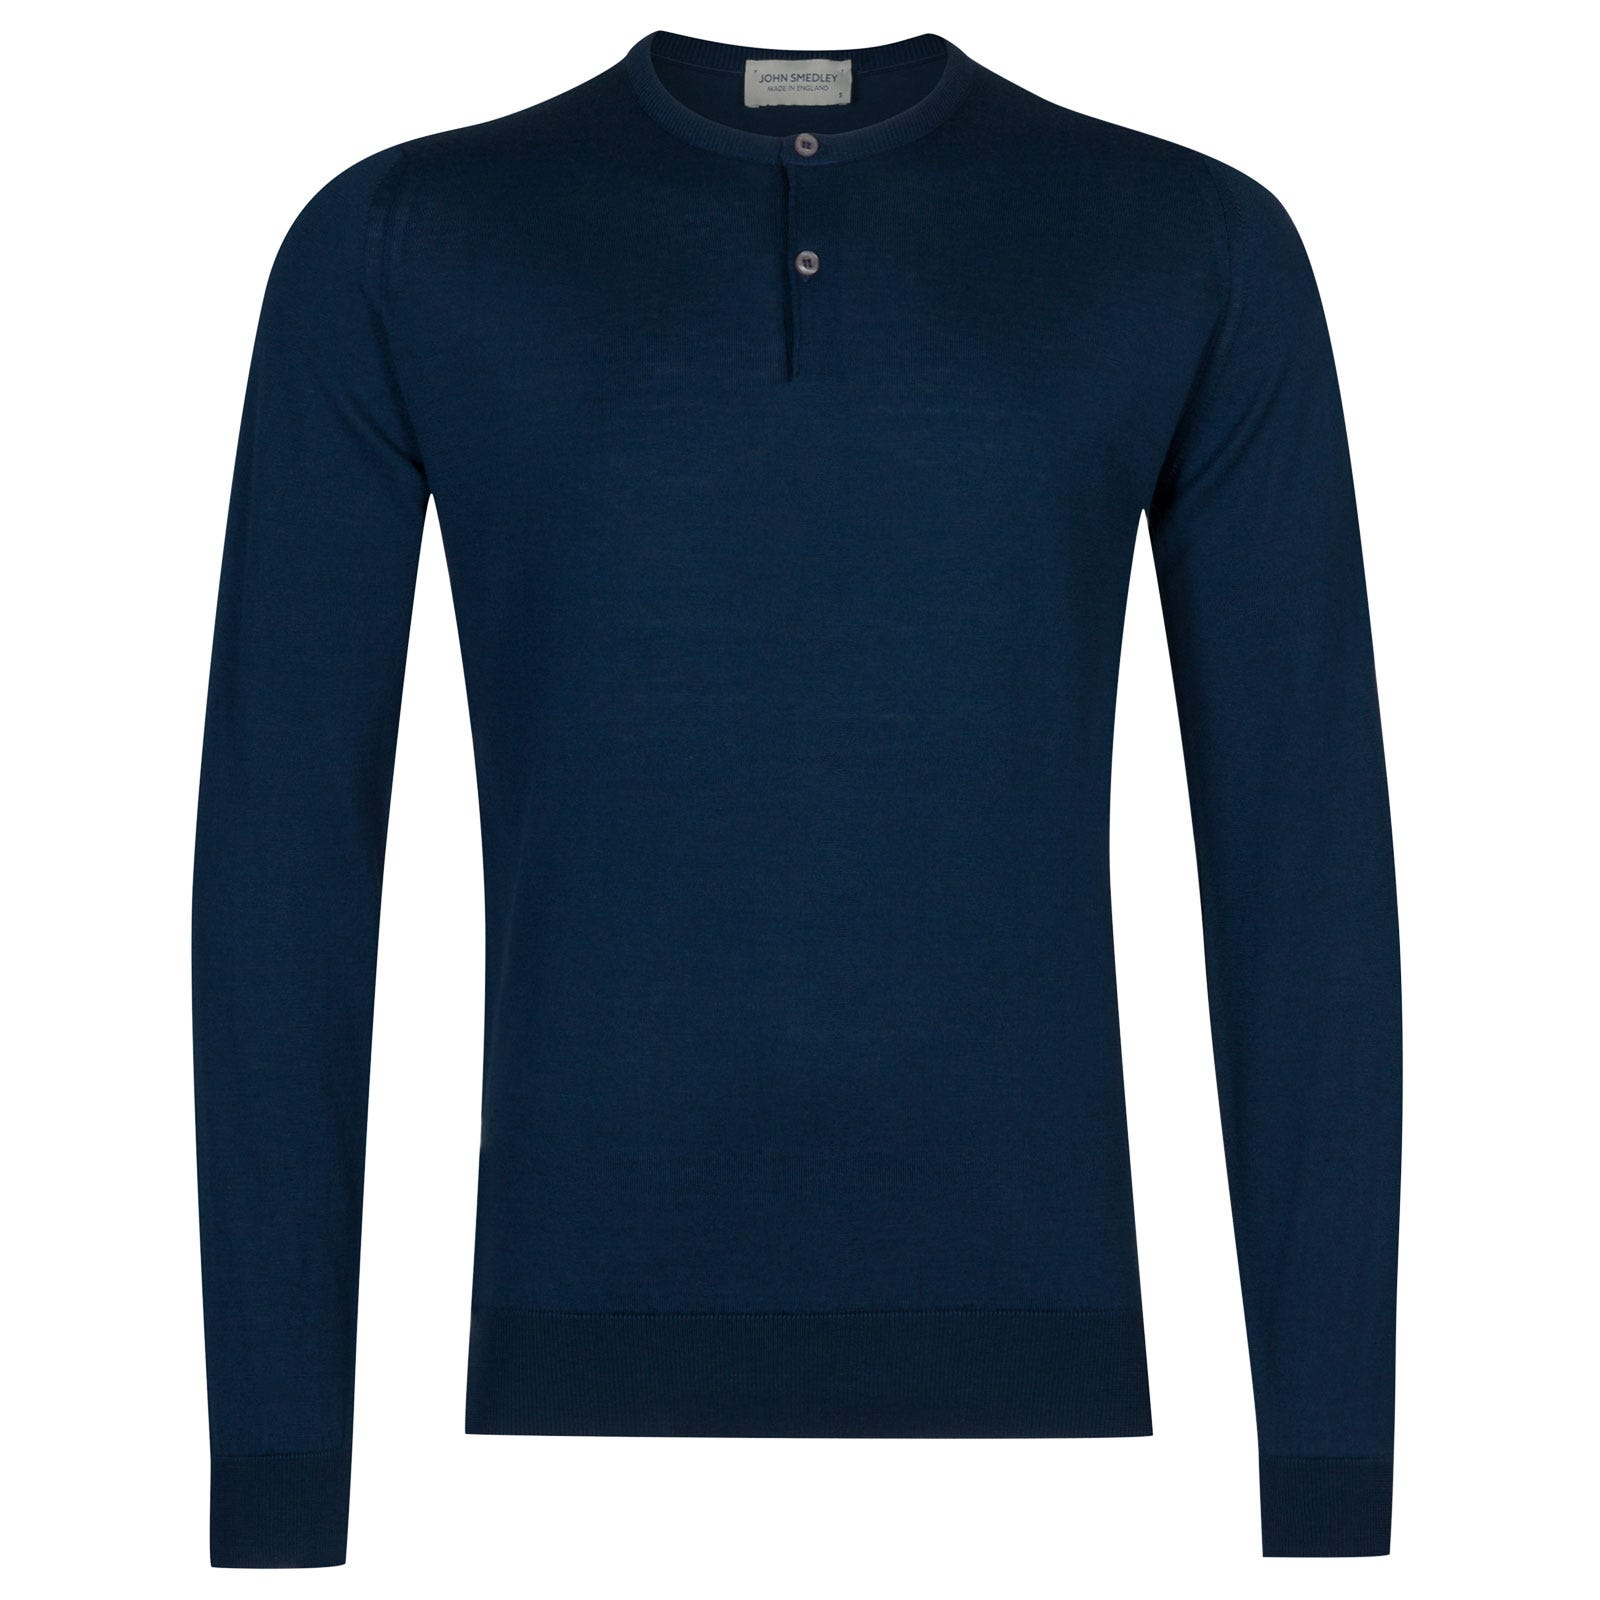 John Smedley Wembury Sea Island Cotton Pullover in Indigo-XL